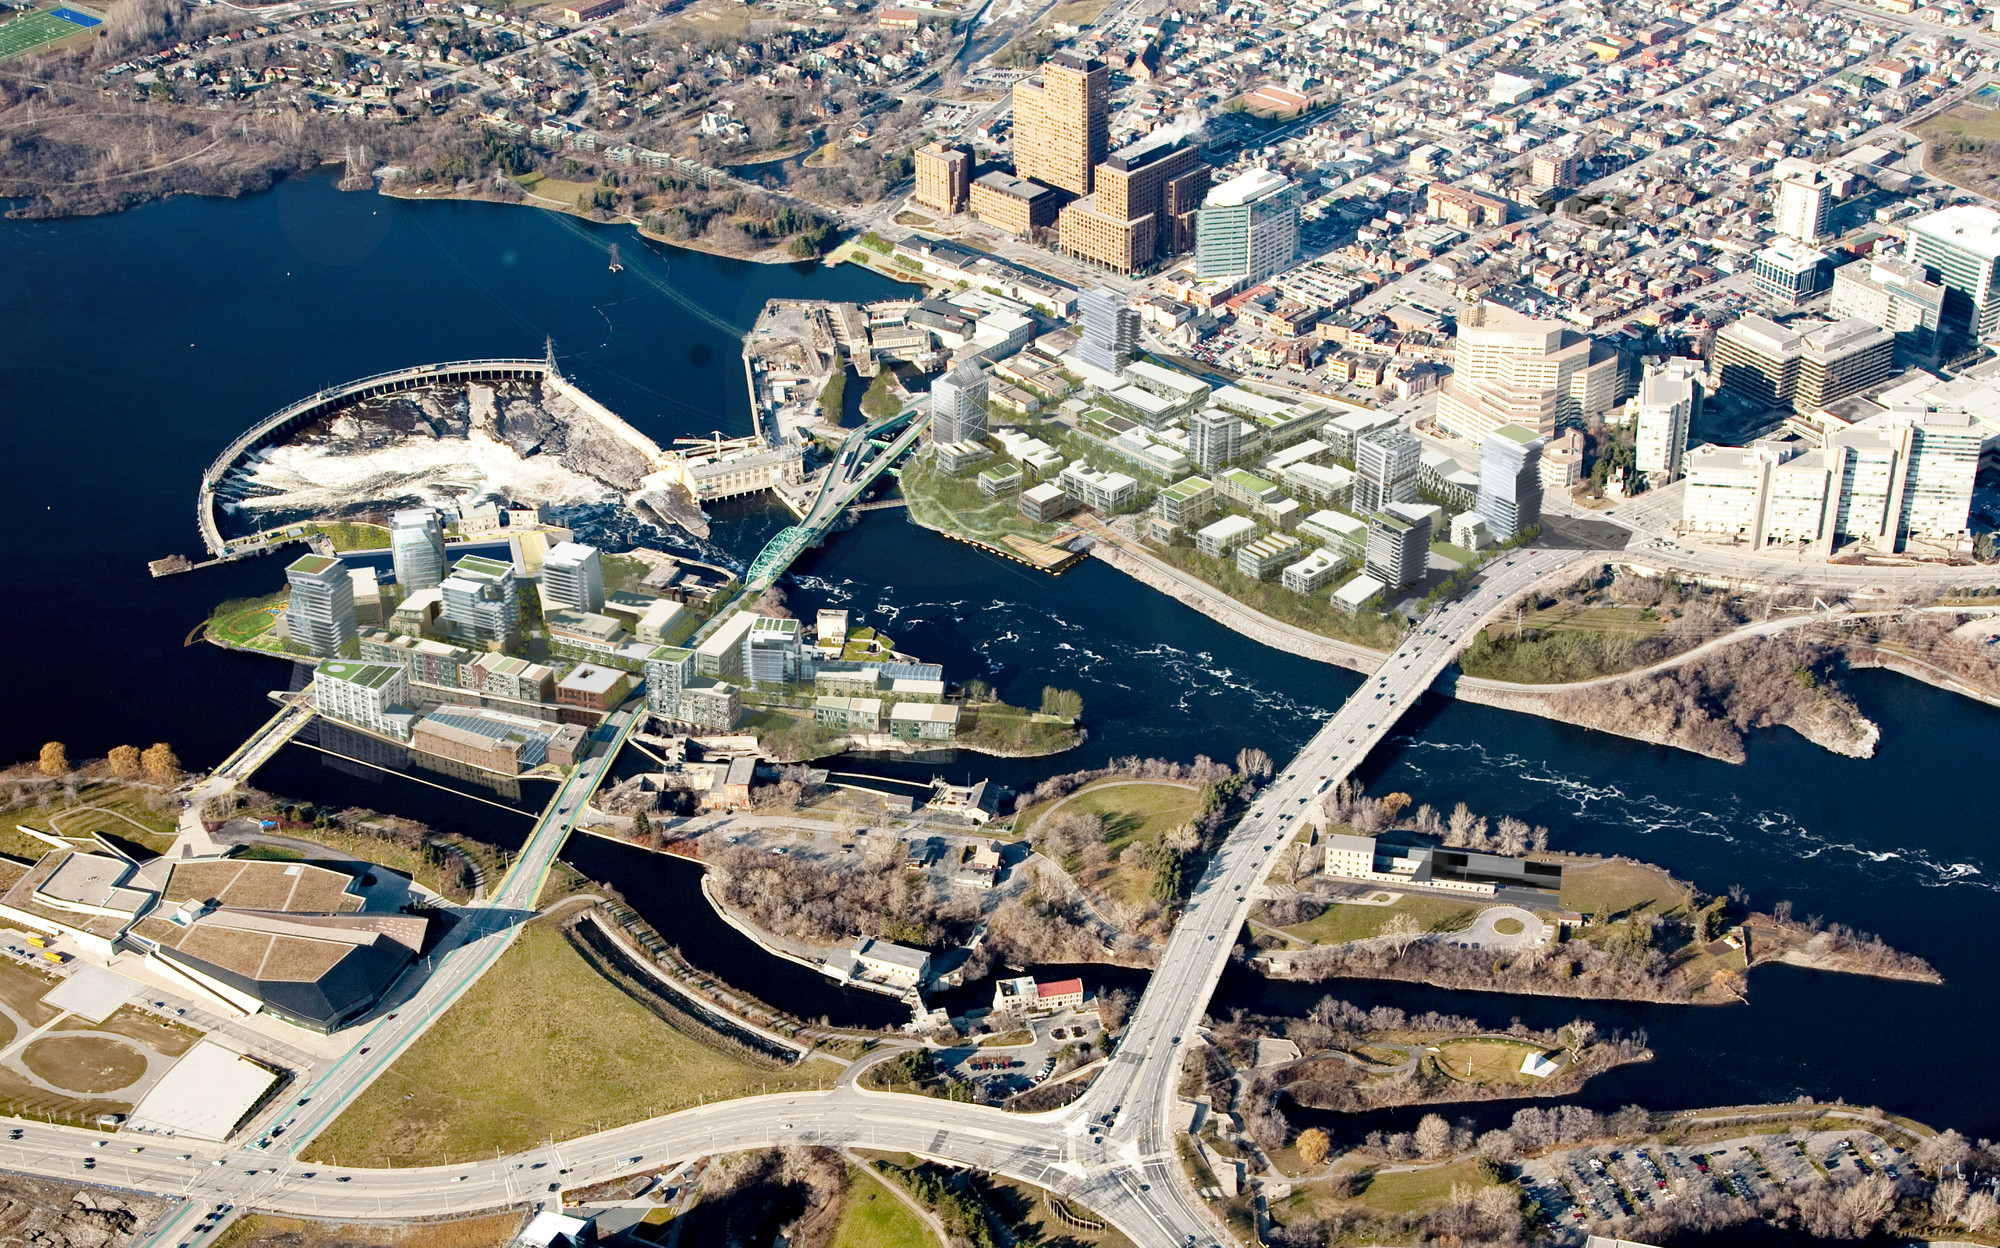 4 Ways Cold-Climate Cities Can Make The Most Of Their Waterfronts, Chaudière Island project in Ottawa. Image © Chris Foyd courtesy of Perkins+Will